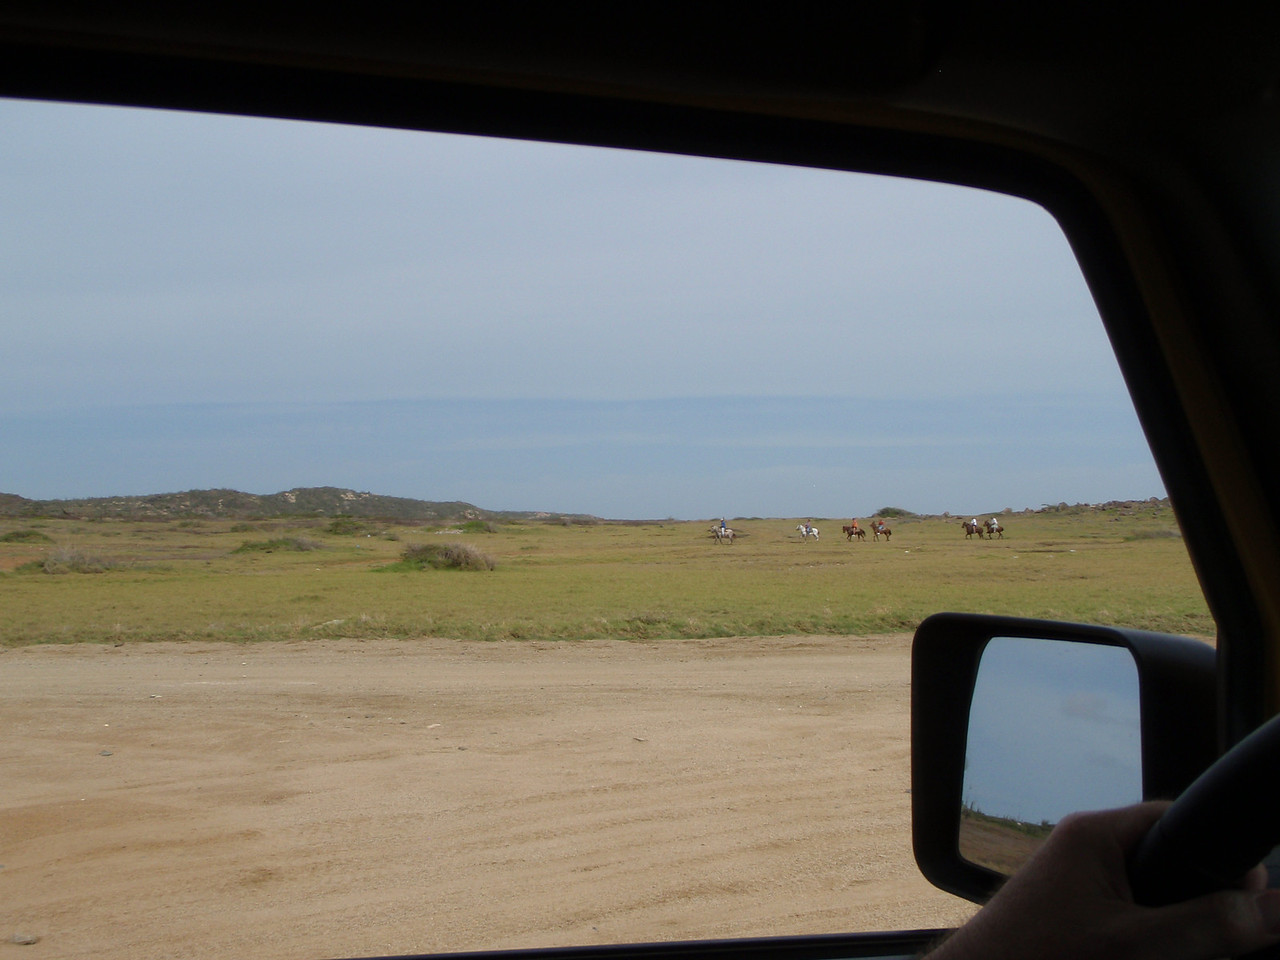 We headed north along the coast where we passed a tour group on horseback.